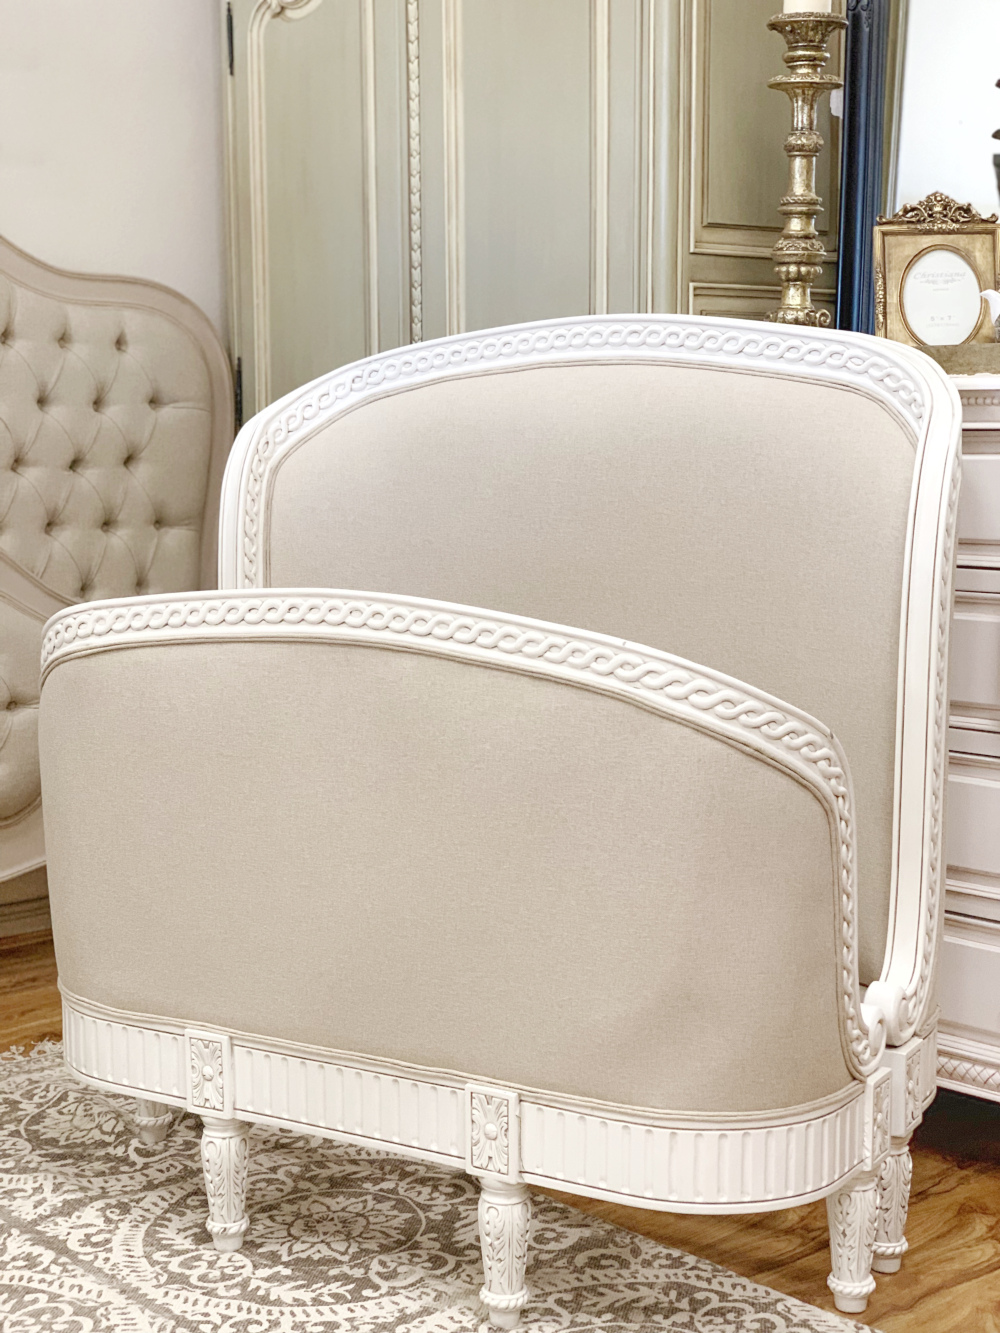 Inverness Upholstered Bed